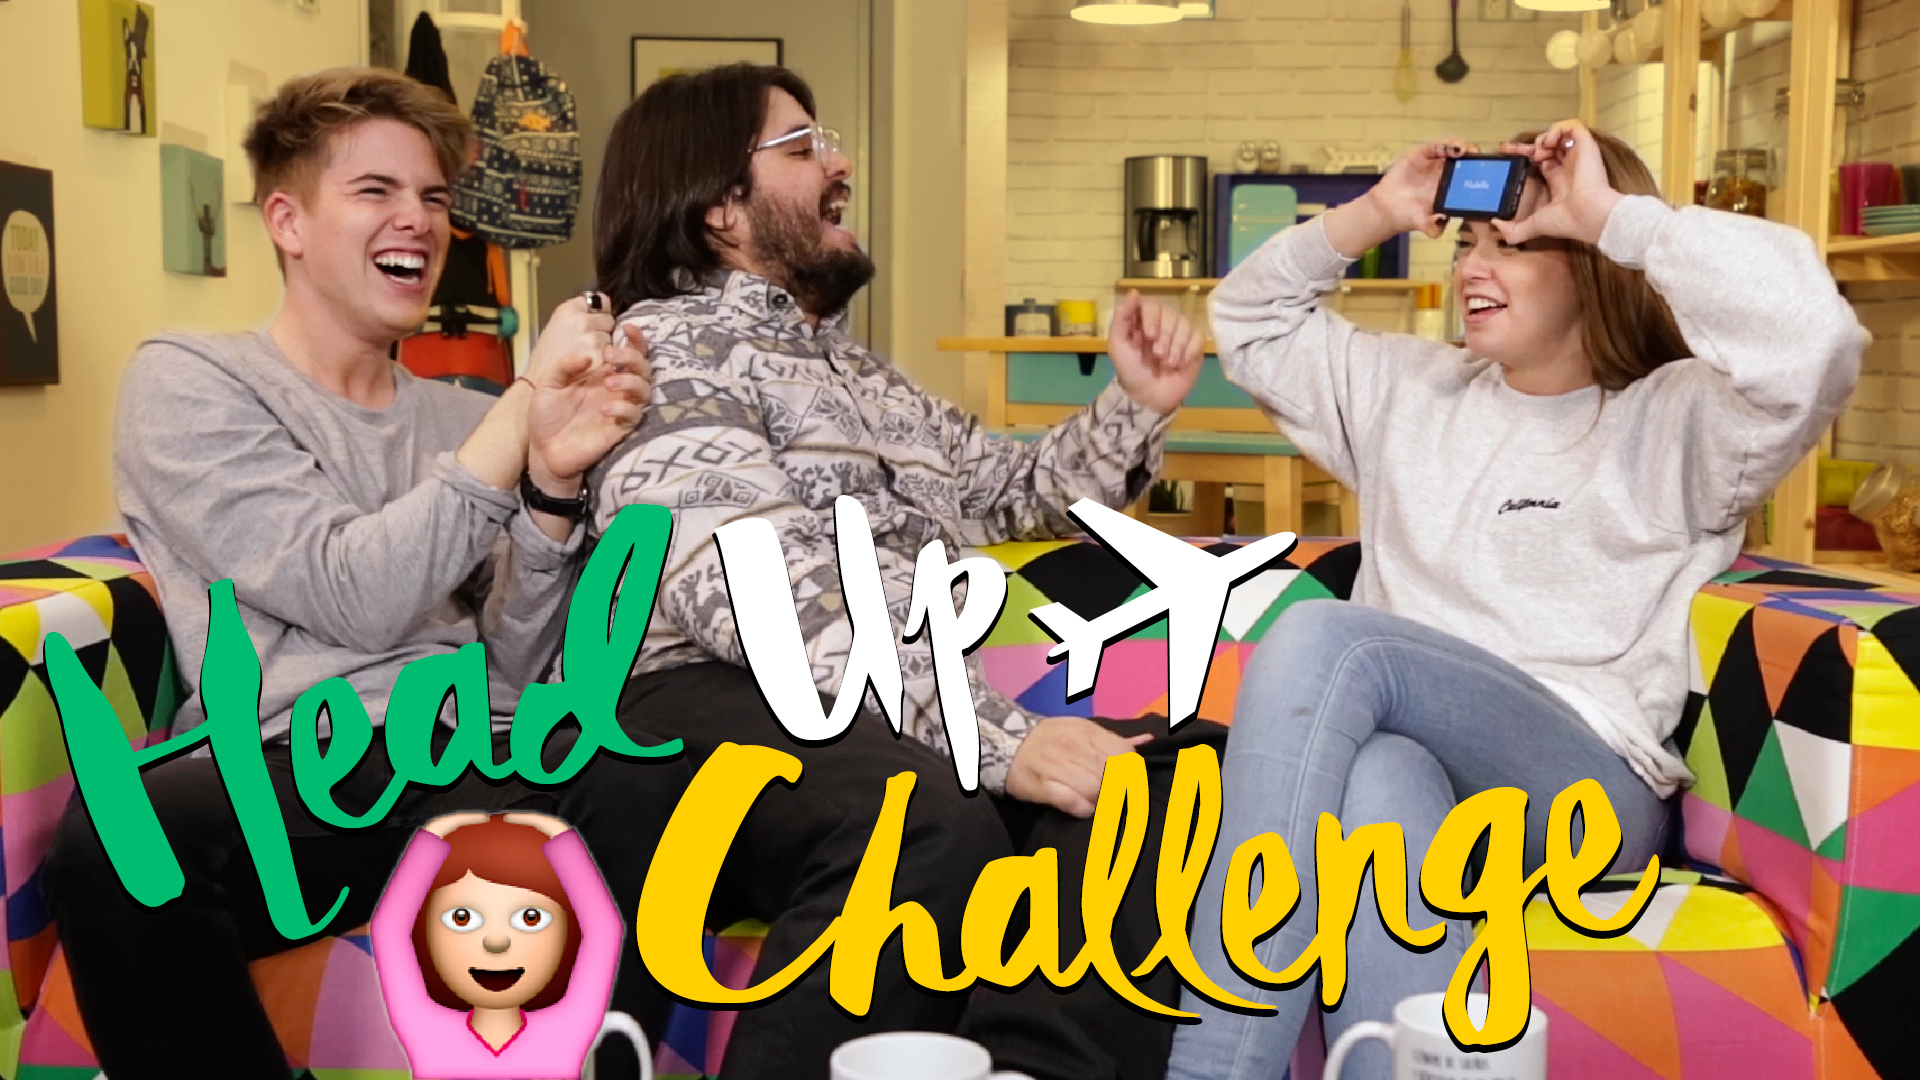 Temporada 1 Head Up Challenge con dos rubias